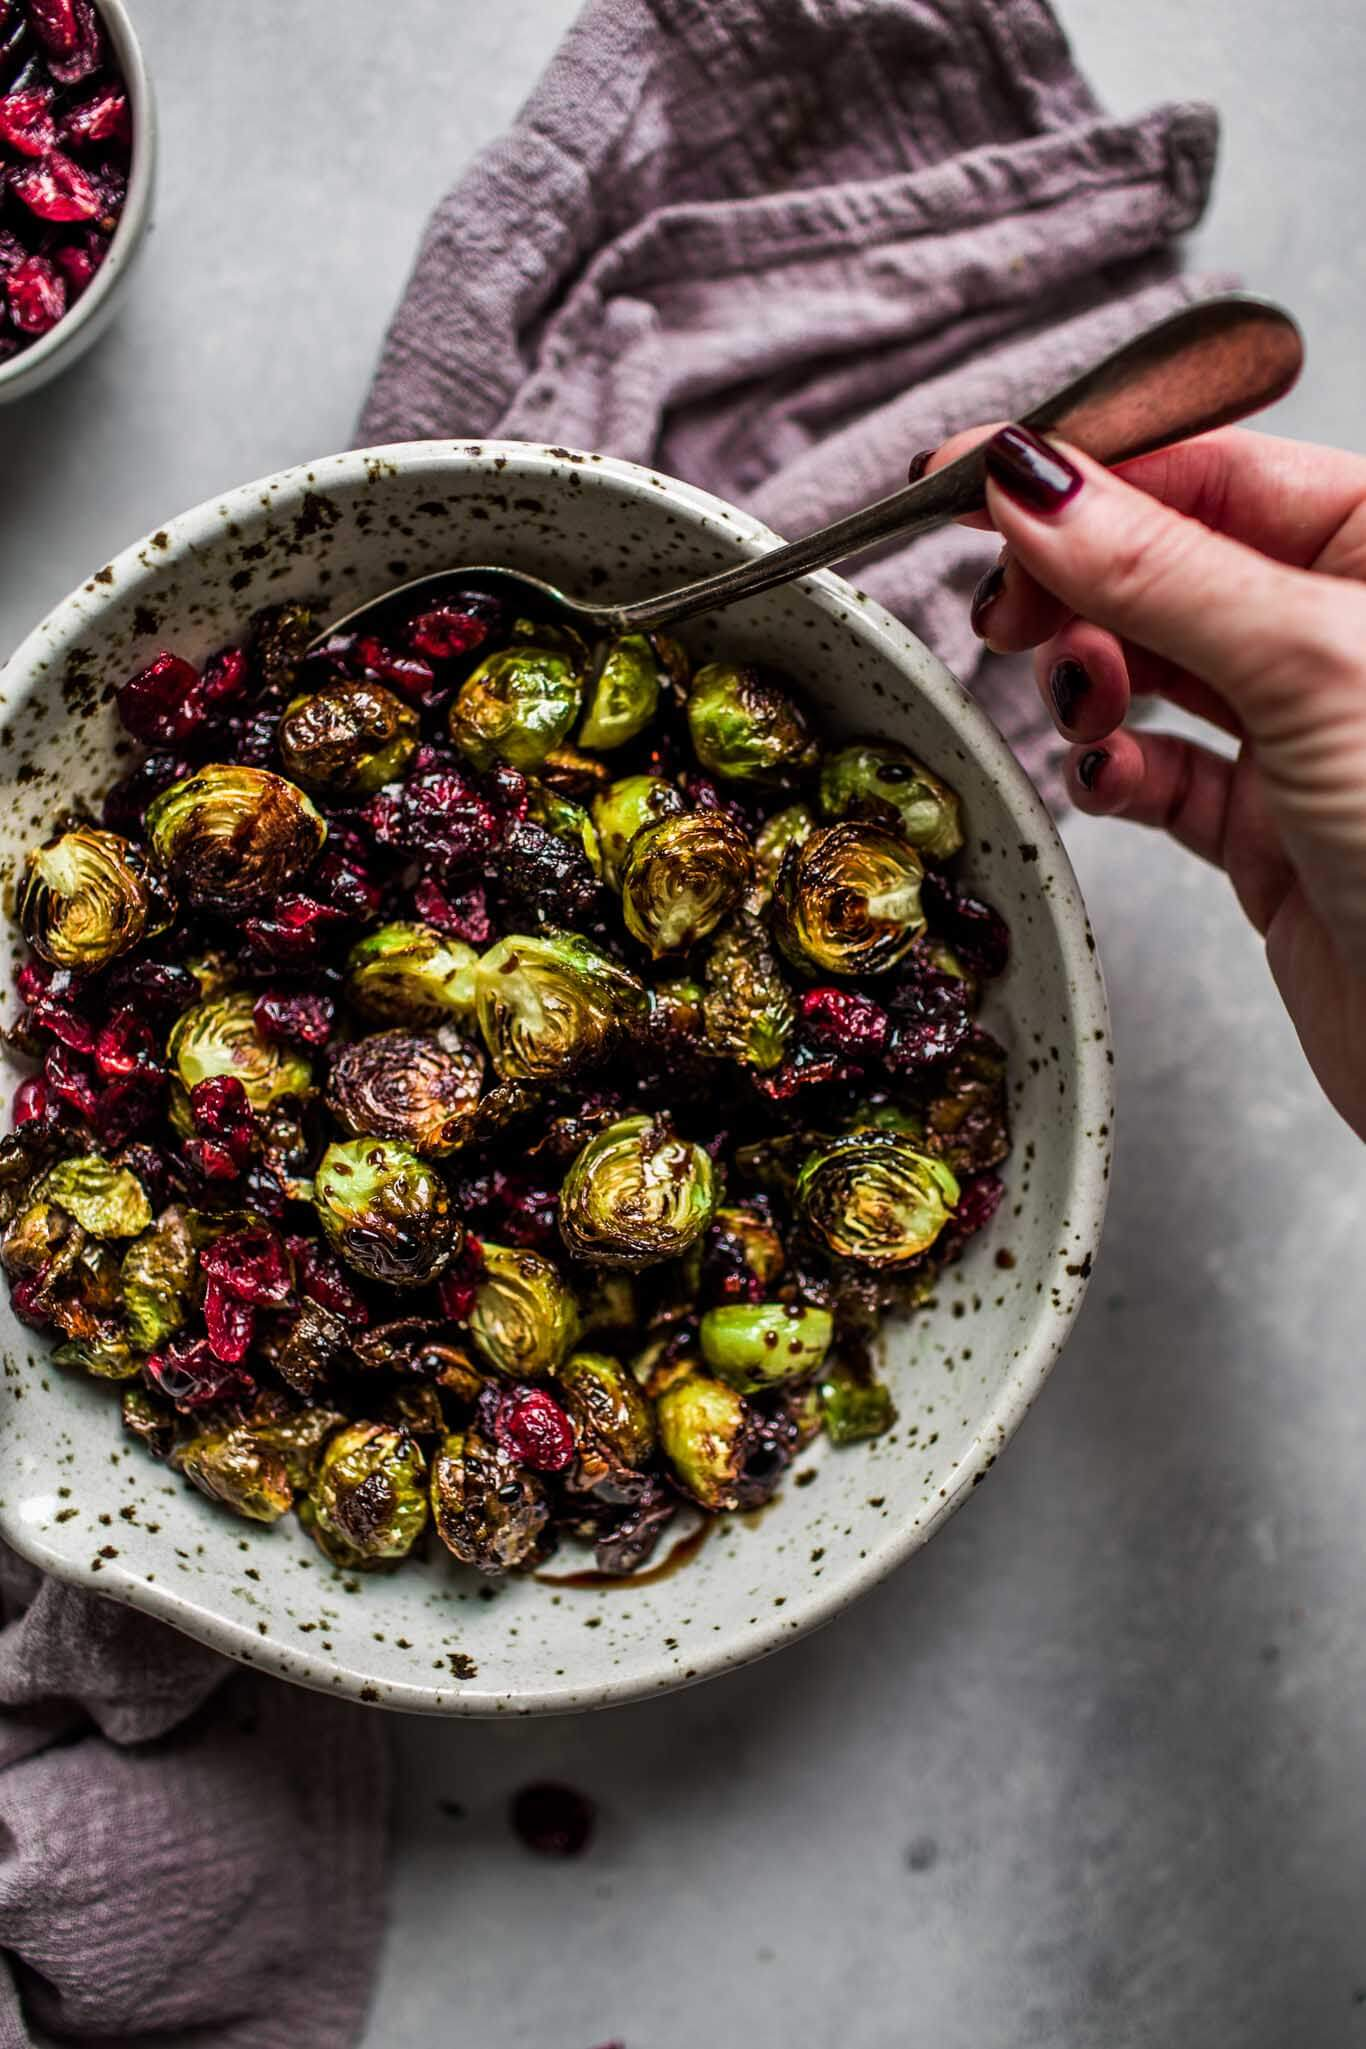 Hand reaching for bowl of roasted brussels sprouts with balsamic reduction & cranberries.